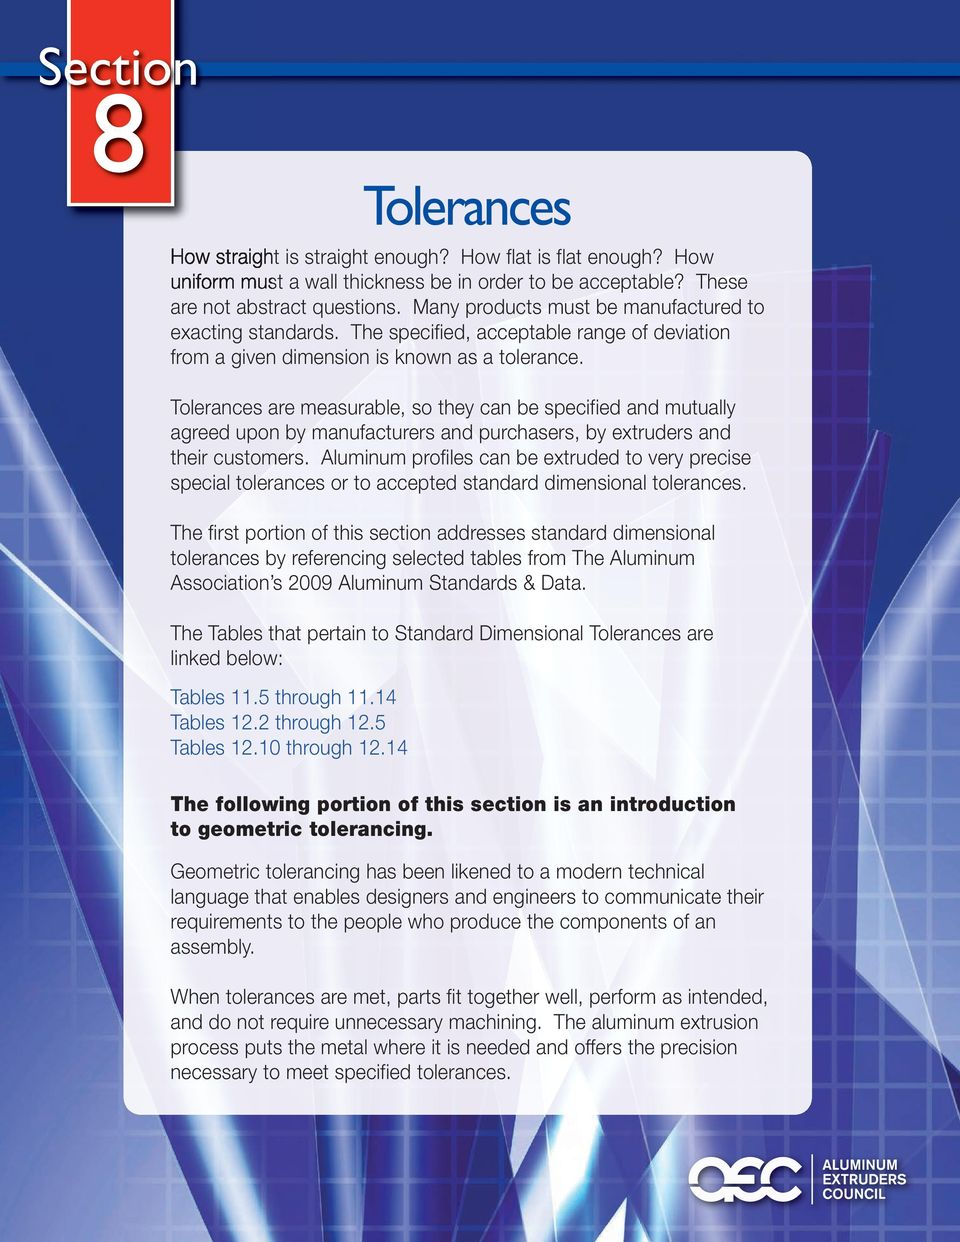 Tolerances are measurable, so they can be specified and mutually agreed upon by manufacturers and purchasers, by extruders and their customers.